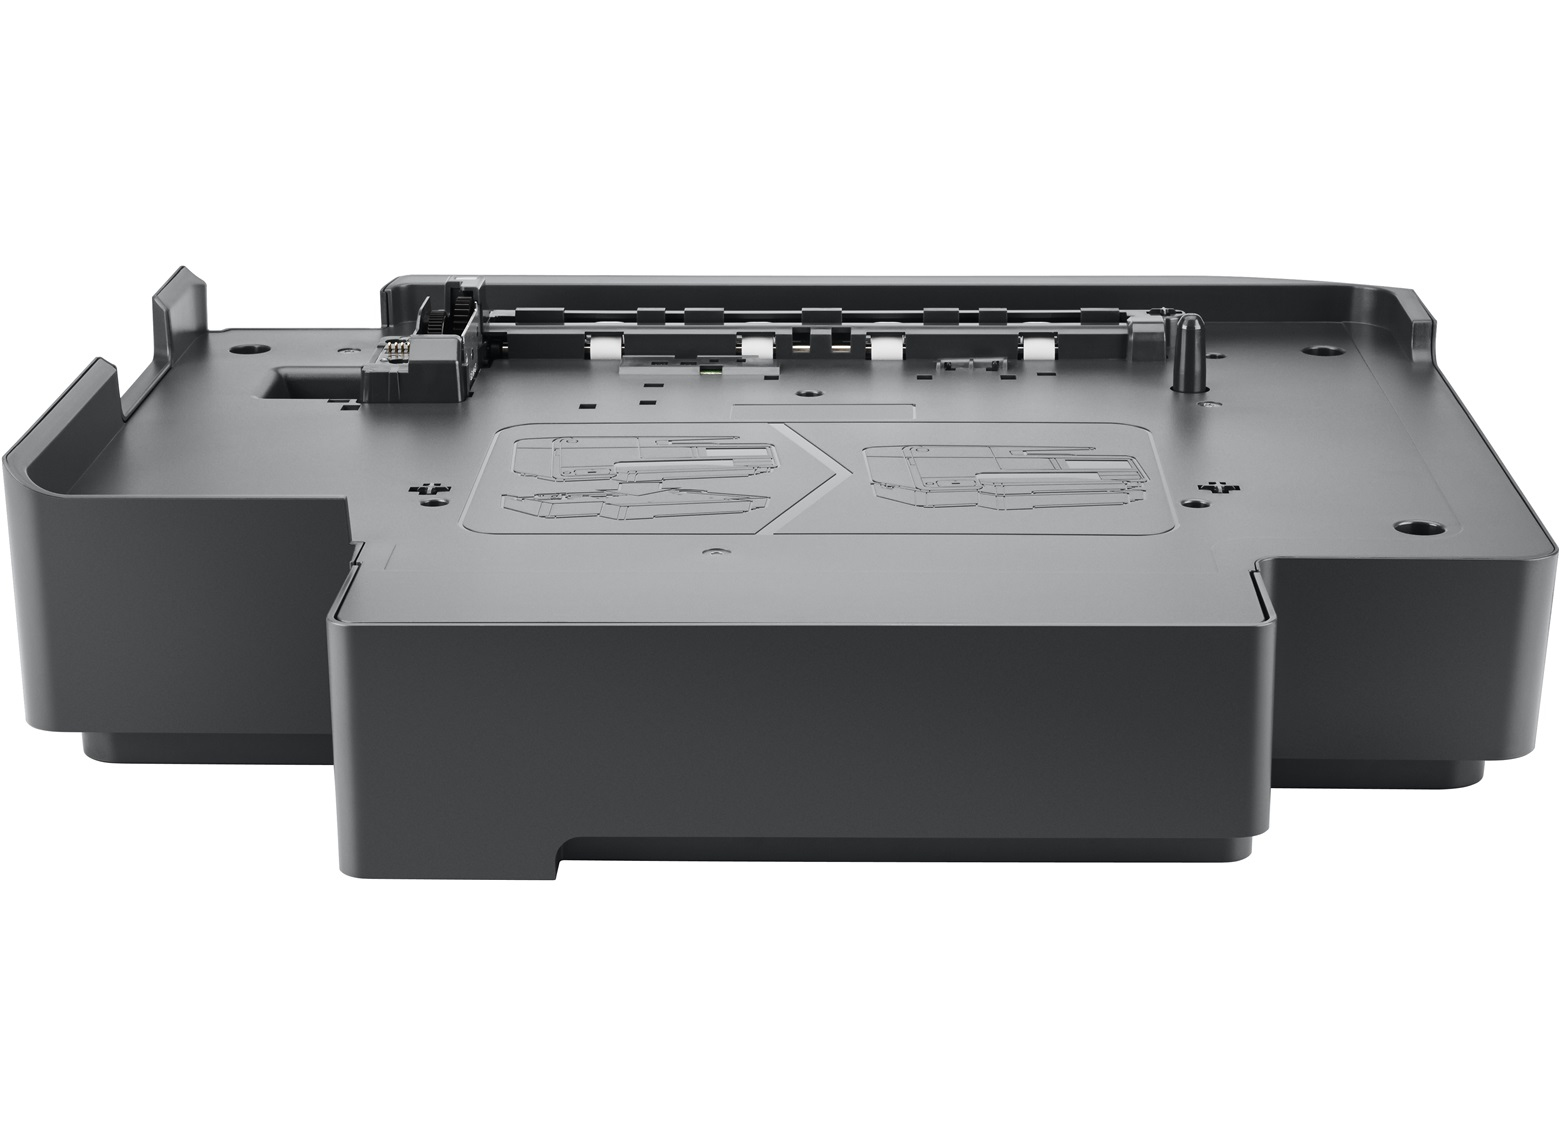 HP Officejet Pro 250 Paper Tray 250sheets